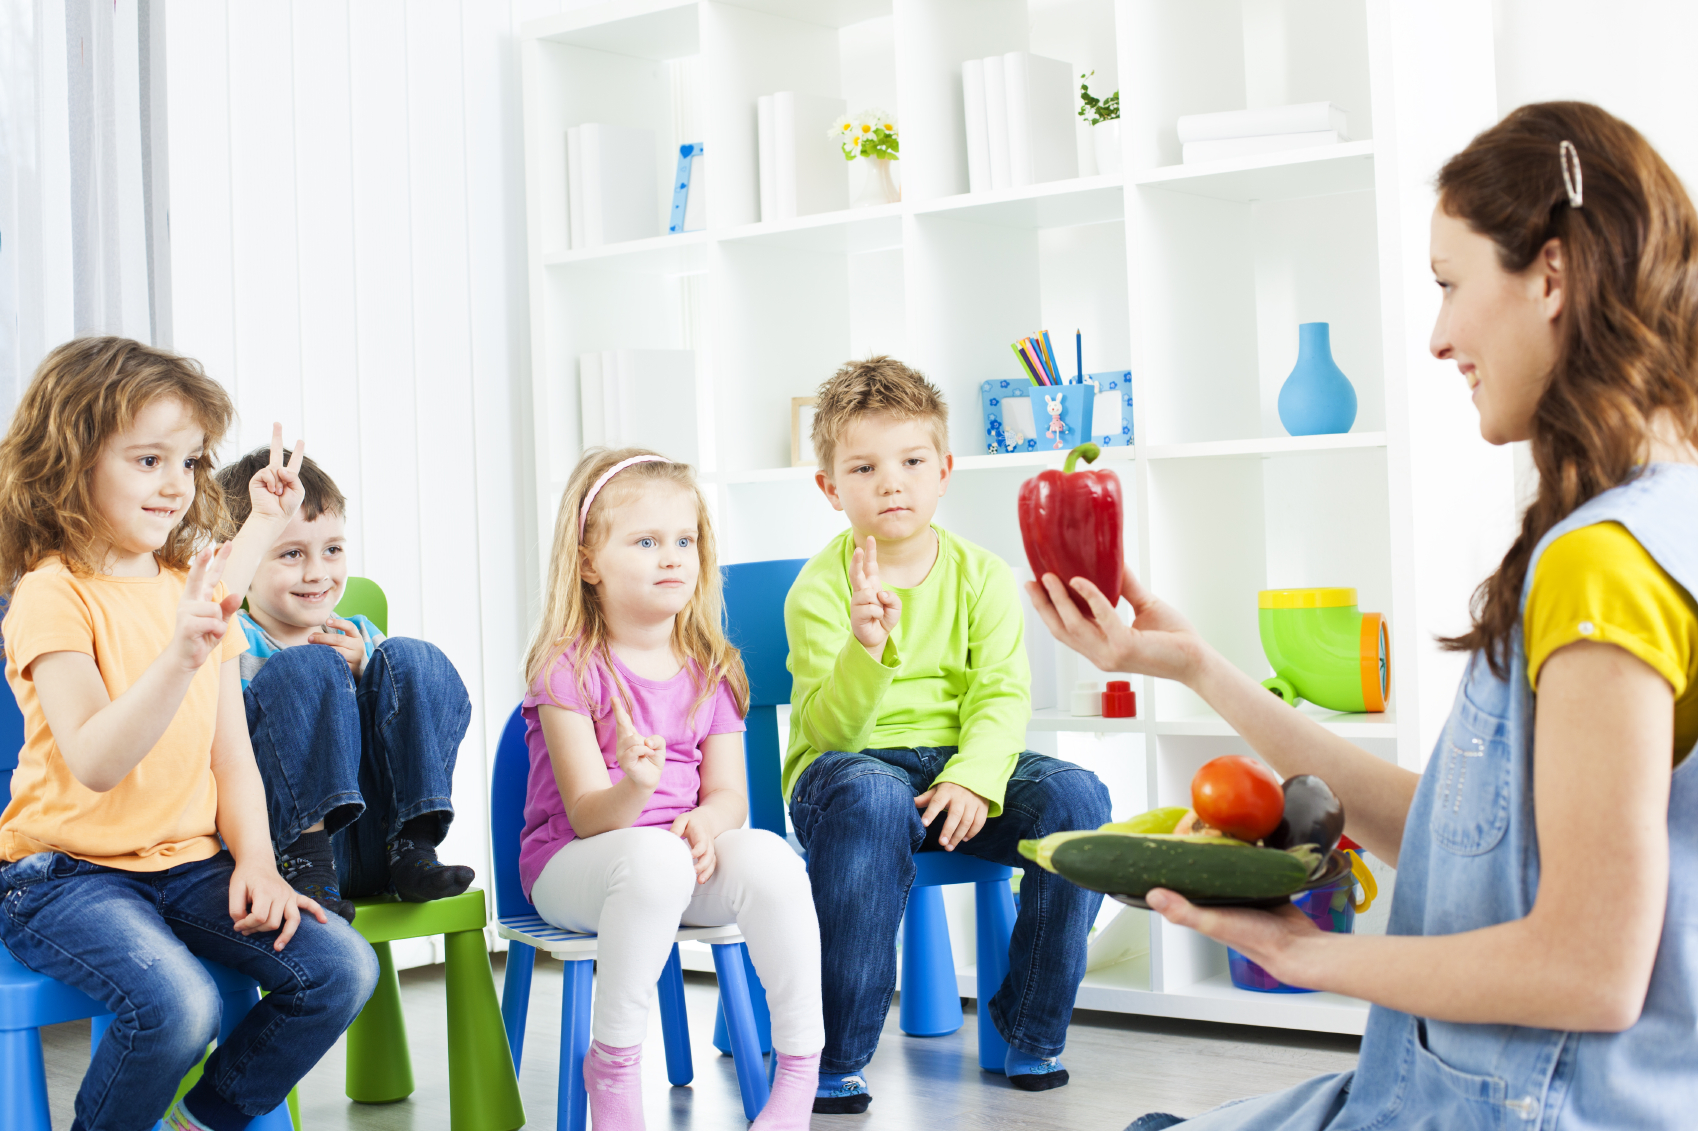 obesity in schools Other factors in the child's environment can also lead to obesity family, friends, and school setting help shape a child's diet and exercise choices food may be .